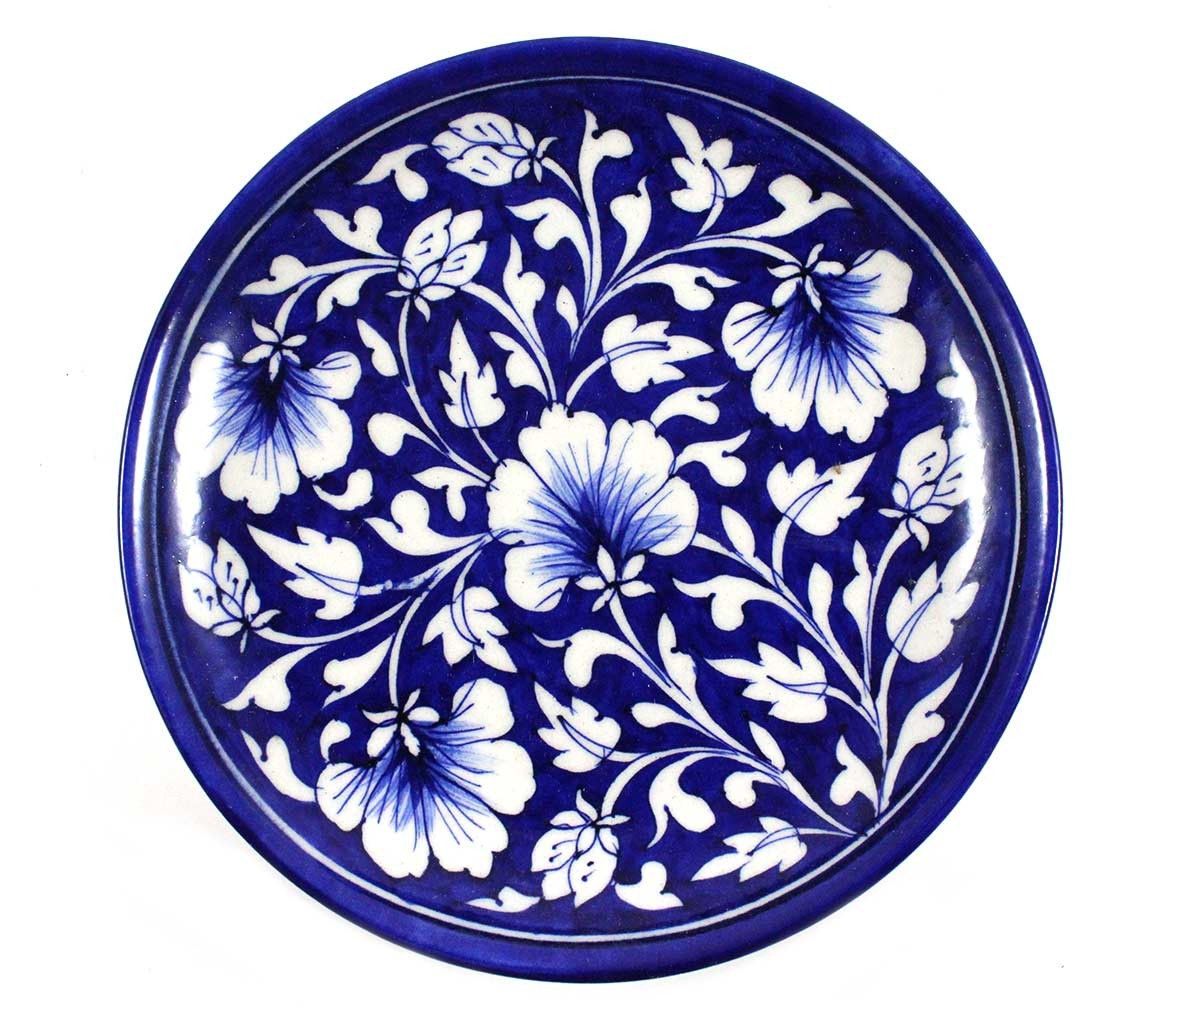 Blue Decorative Wall Plates Custom Buy Classy Blue Art Decorative Ceramic Wall Art Plates 2India Inspiration